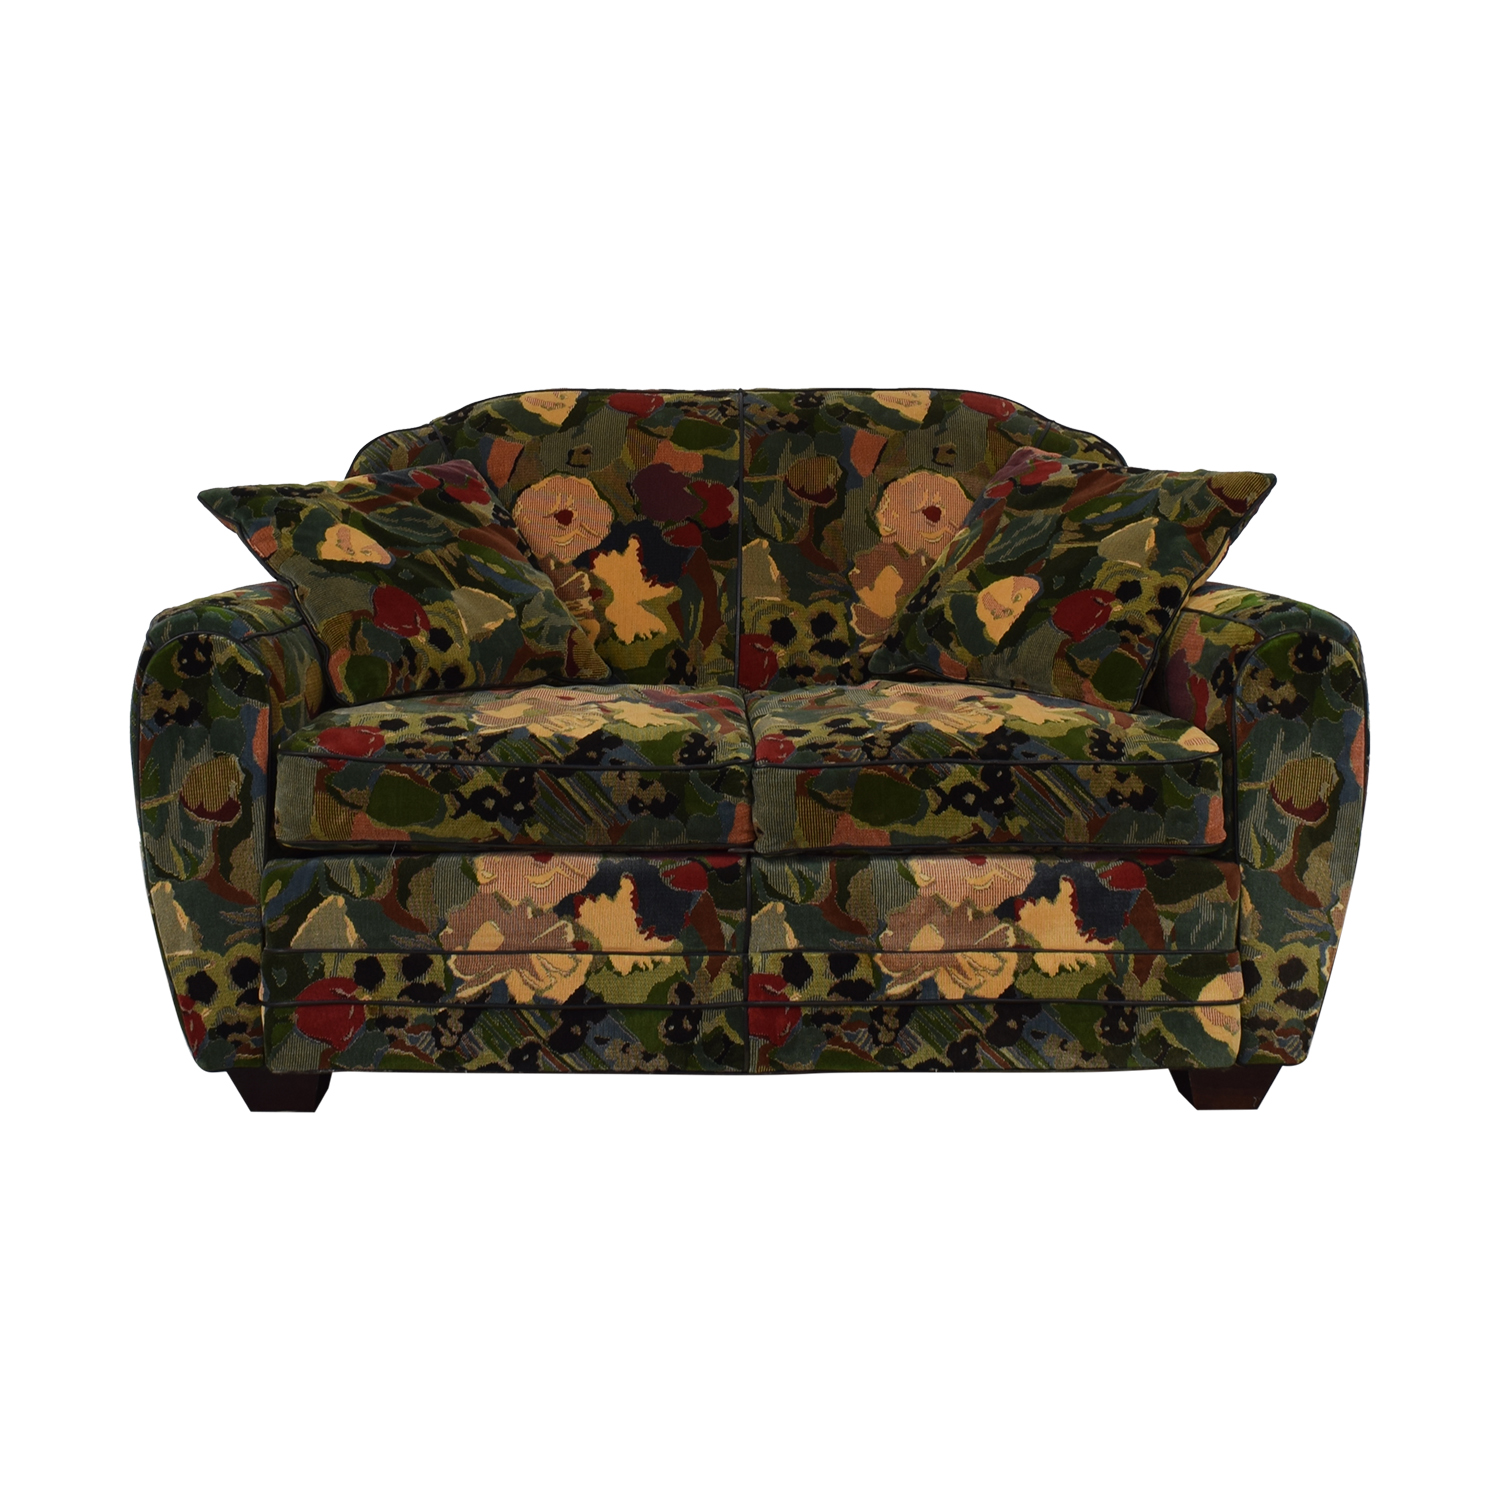 Old Hickory Tannery Old Hickory Tannery Floral Loveseat nyc